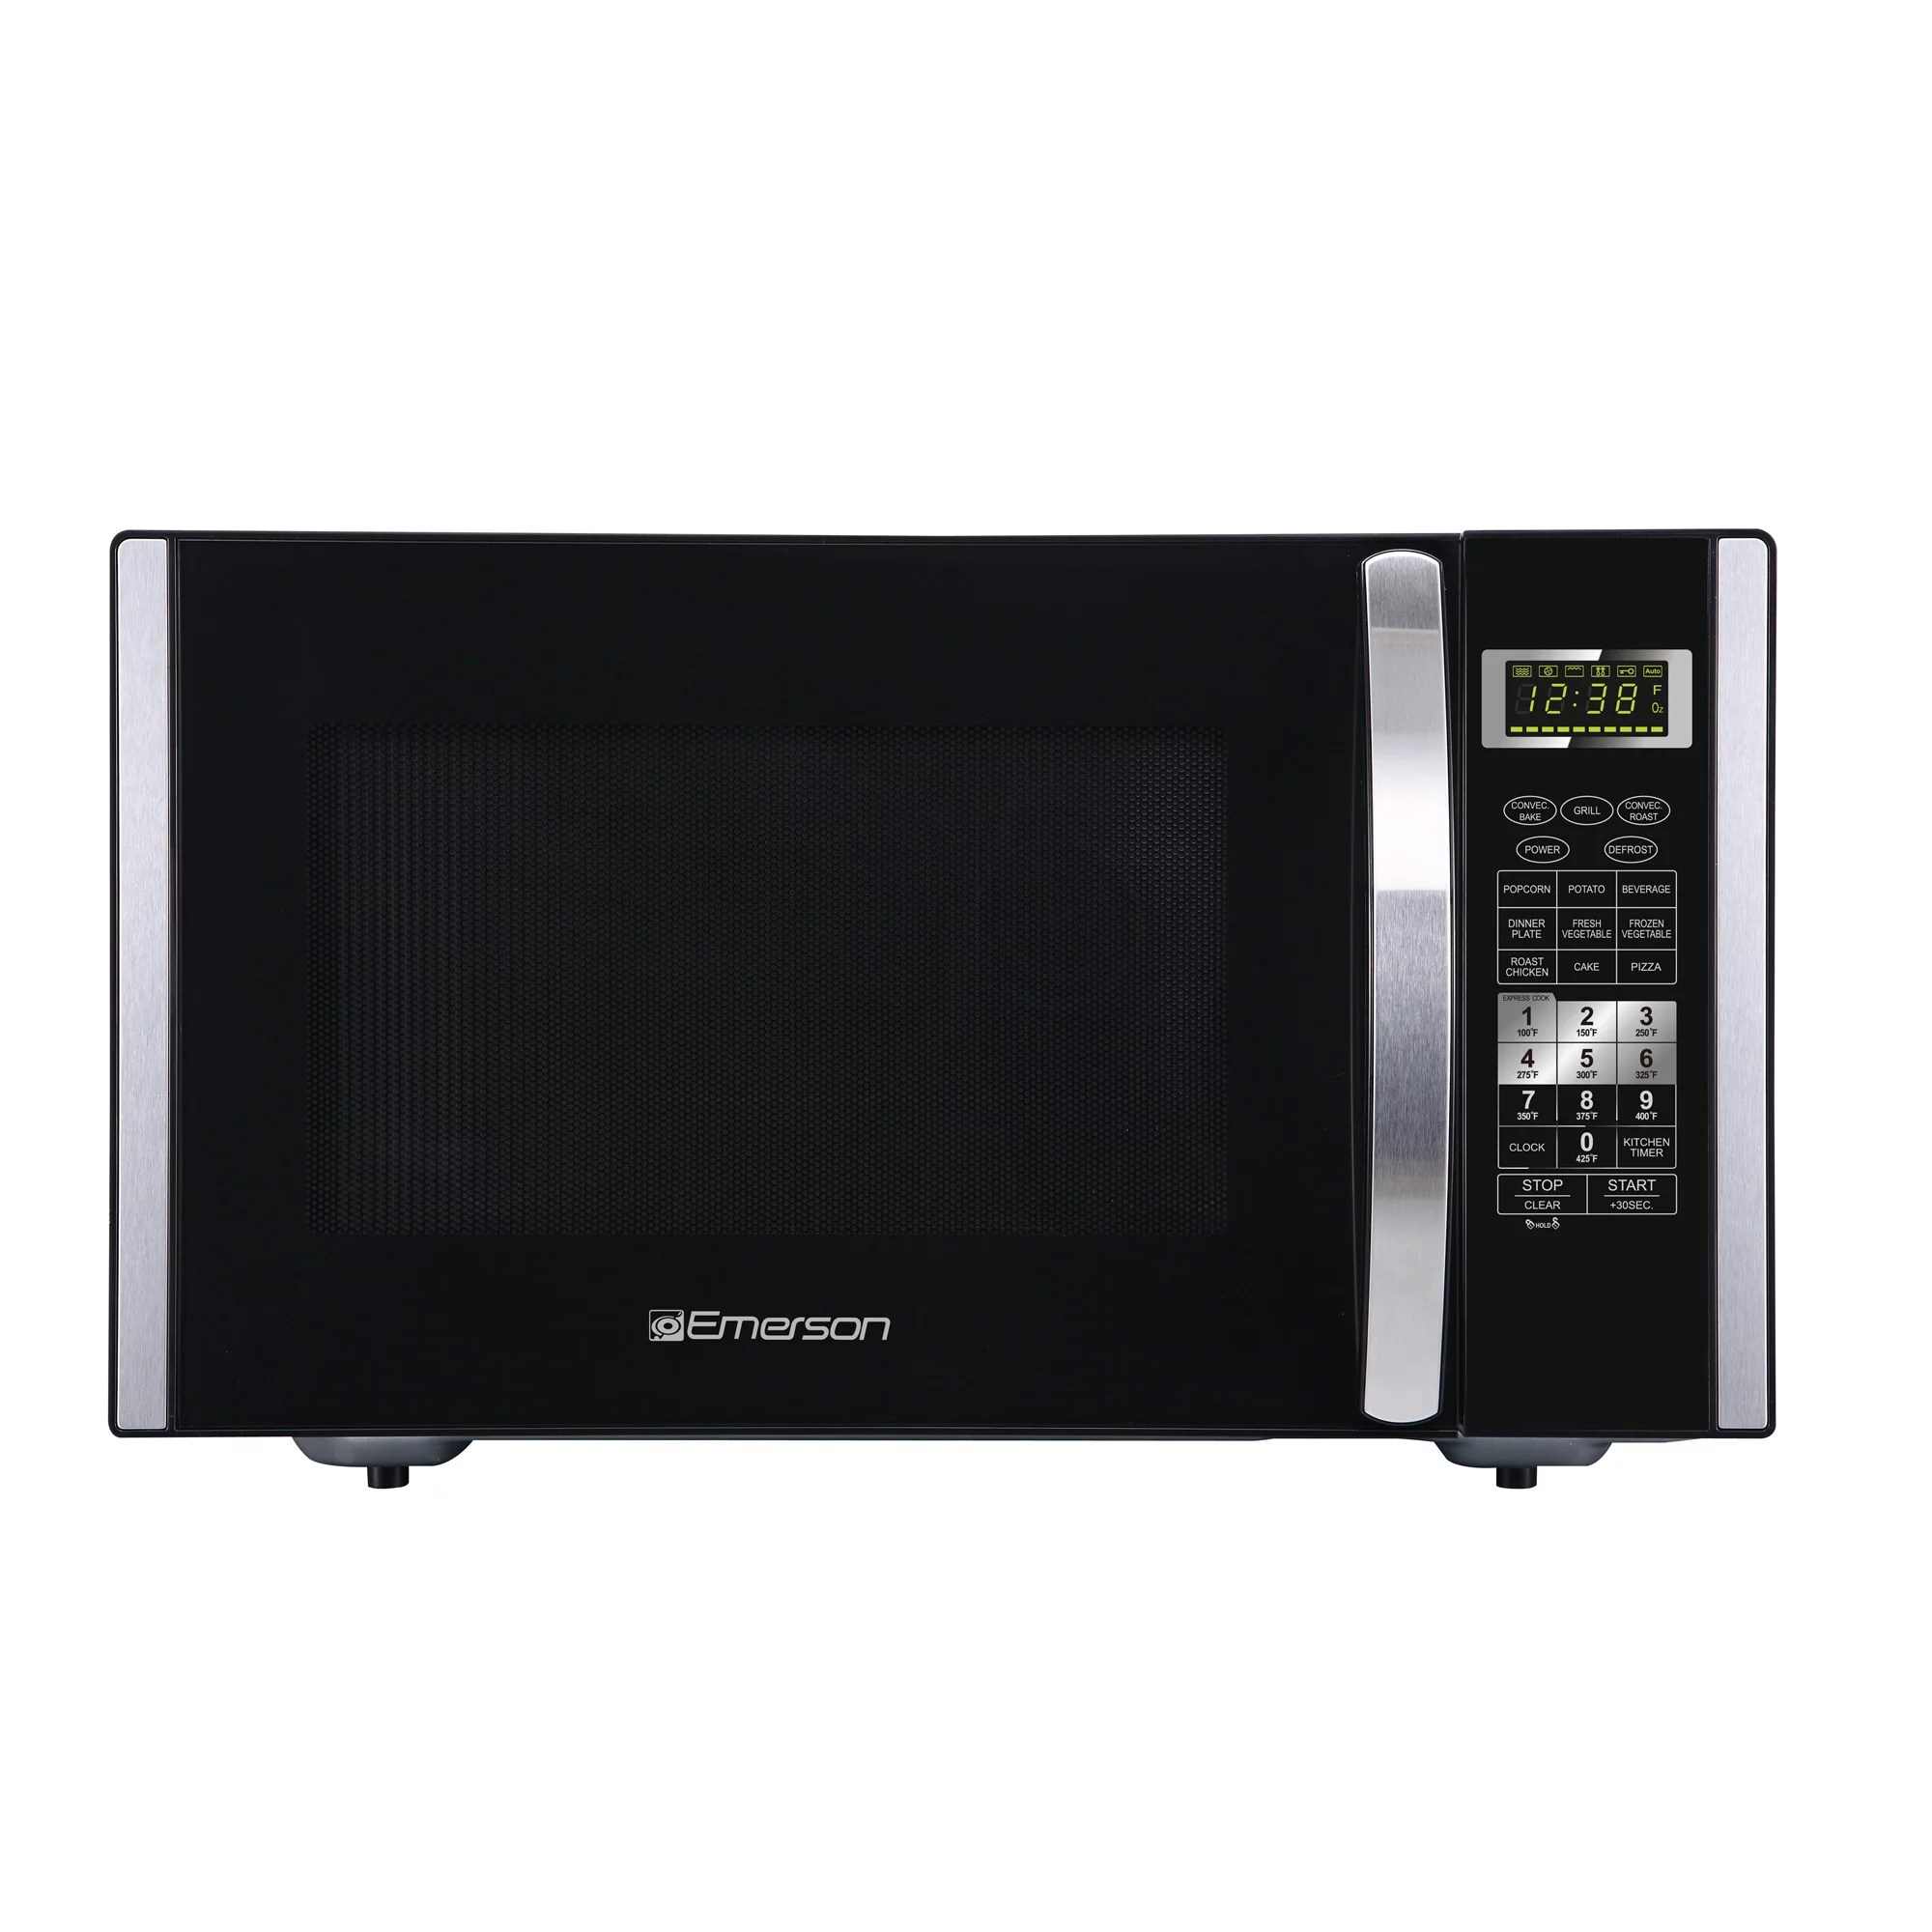 hight resolution of emerson 1 5 cu ft 1000w convection microwave oven with grill touch sharp carousel wiring diagram emerson microwave fan wiring diagram